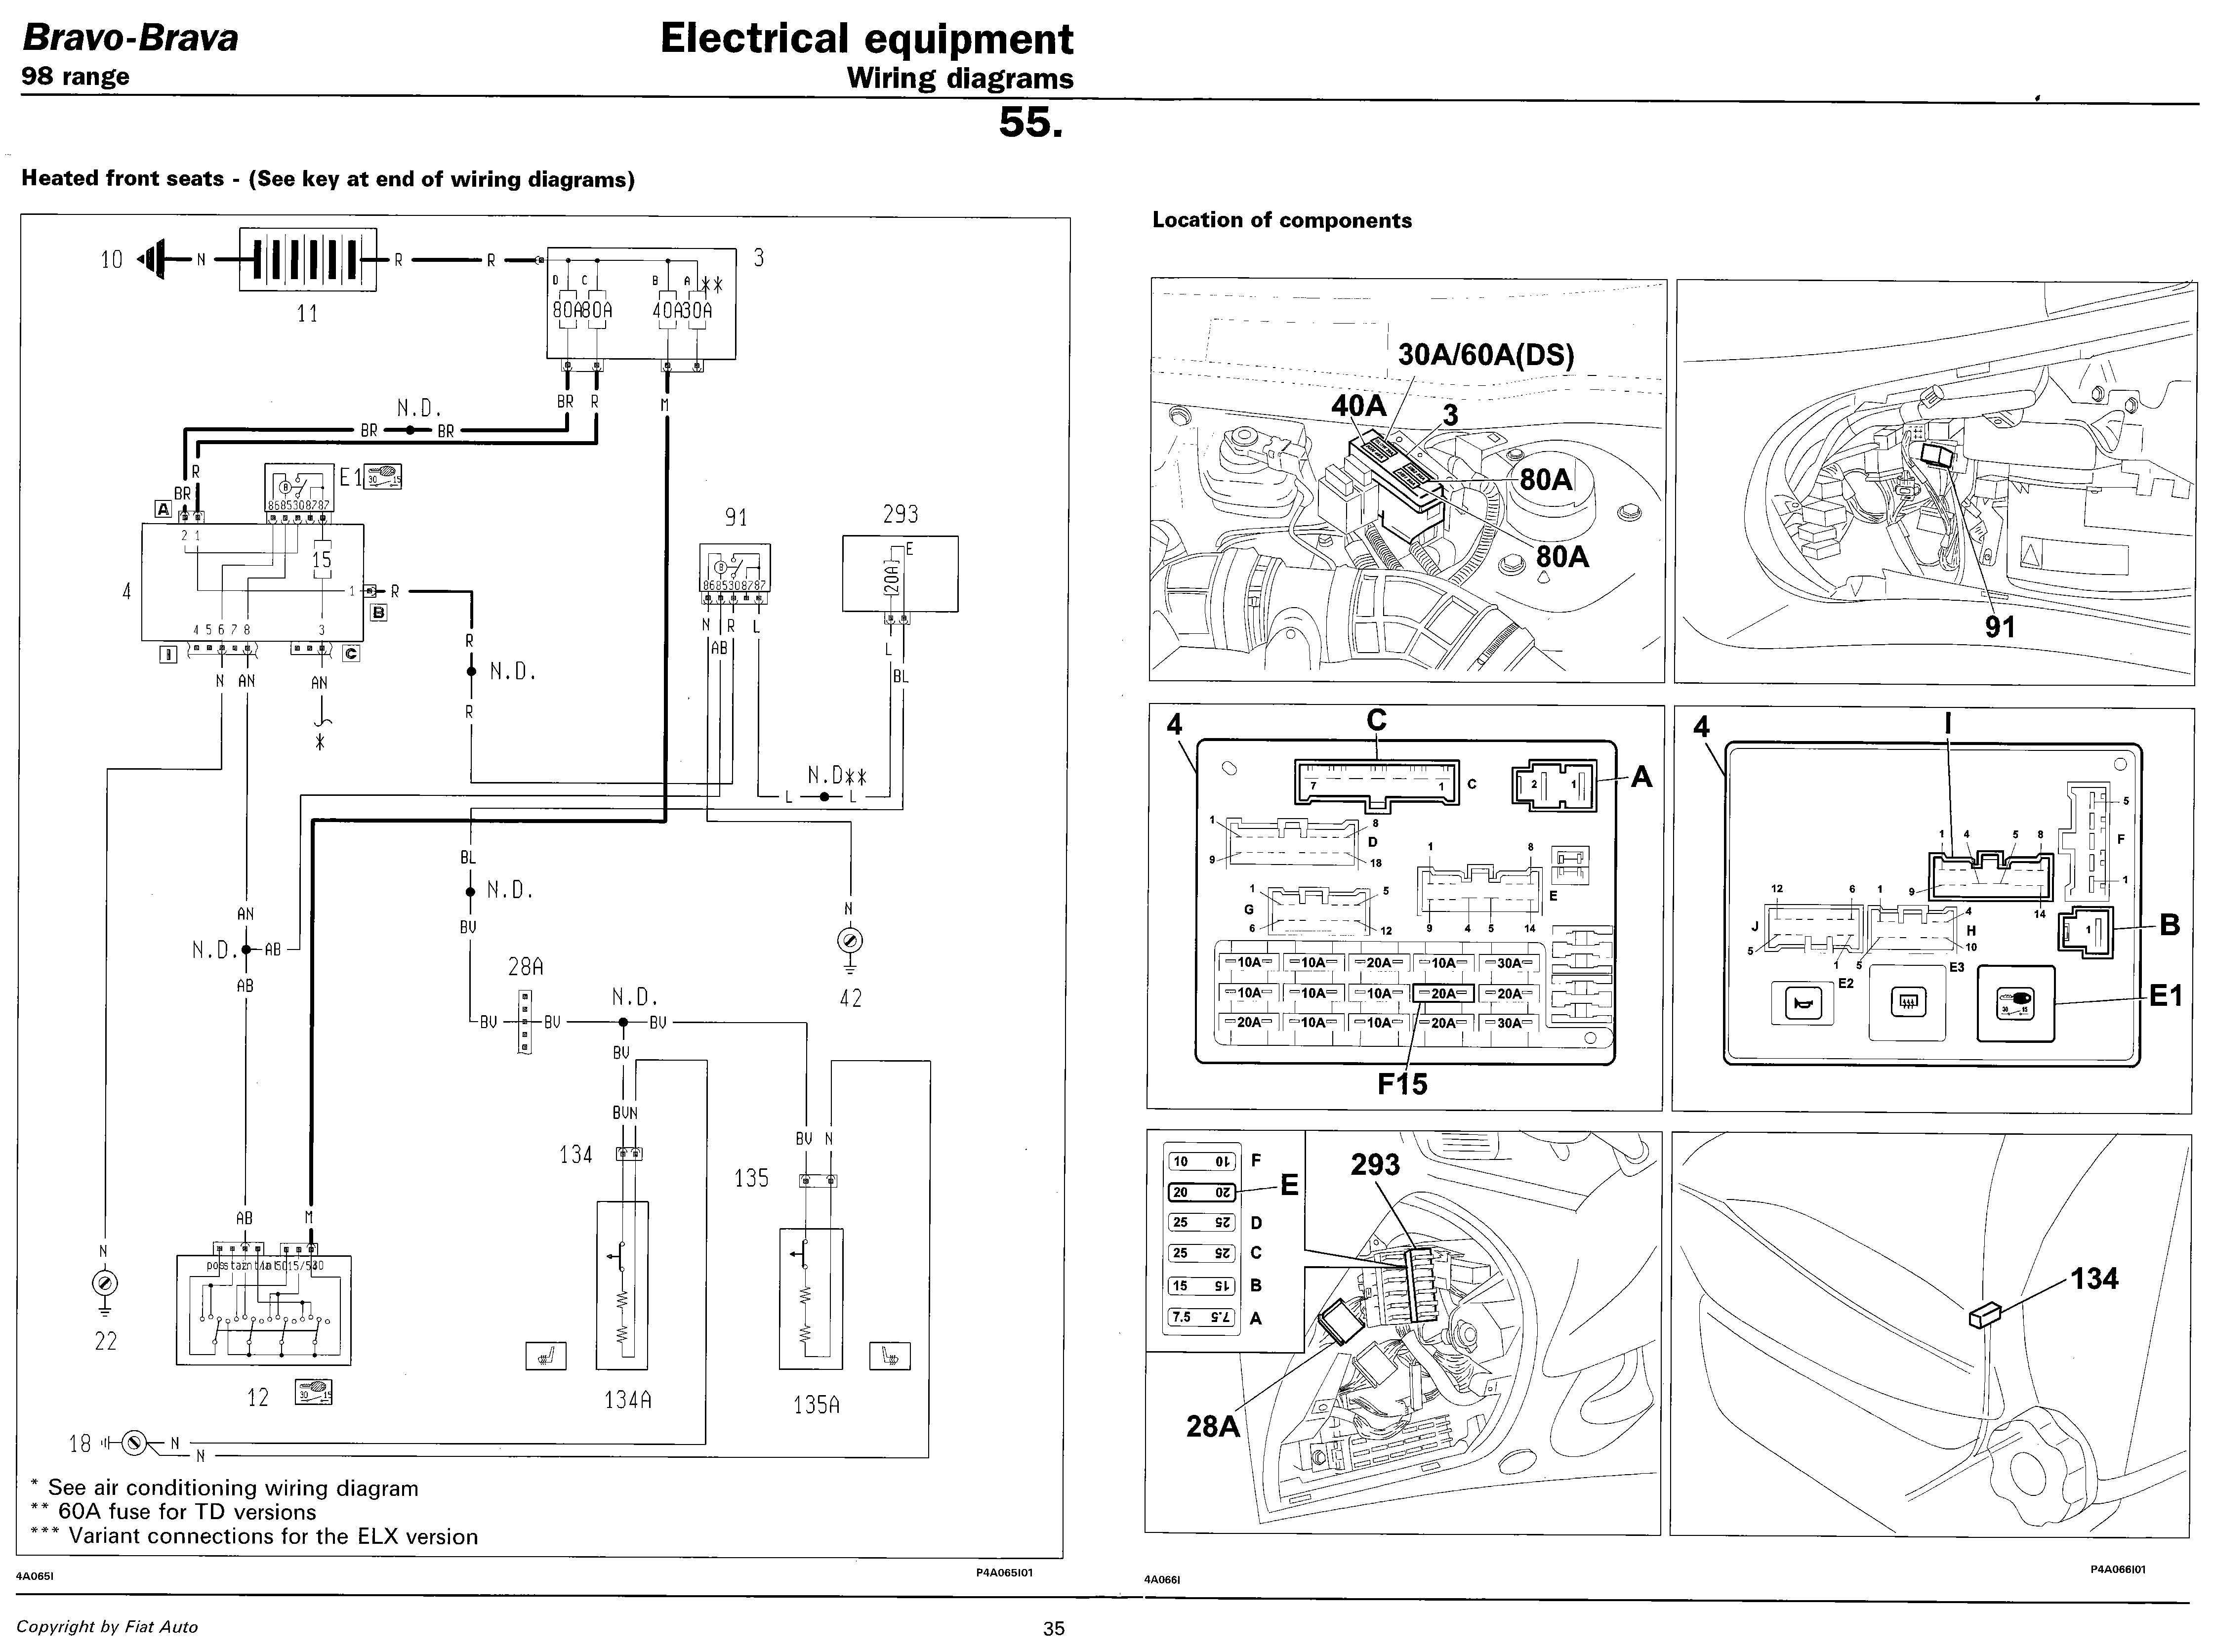 Safc Wiring Diagram Ecu Wiring Diagram Wiring Diagram ~ ODICIS